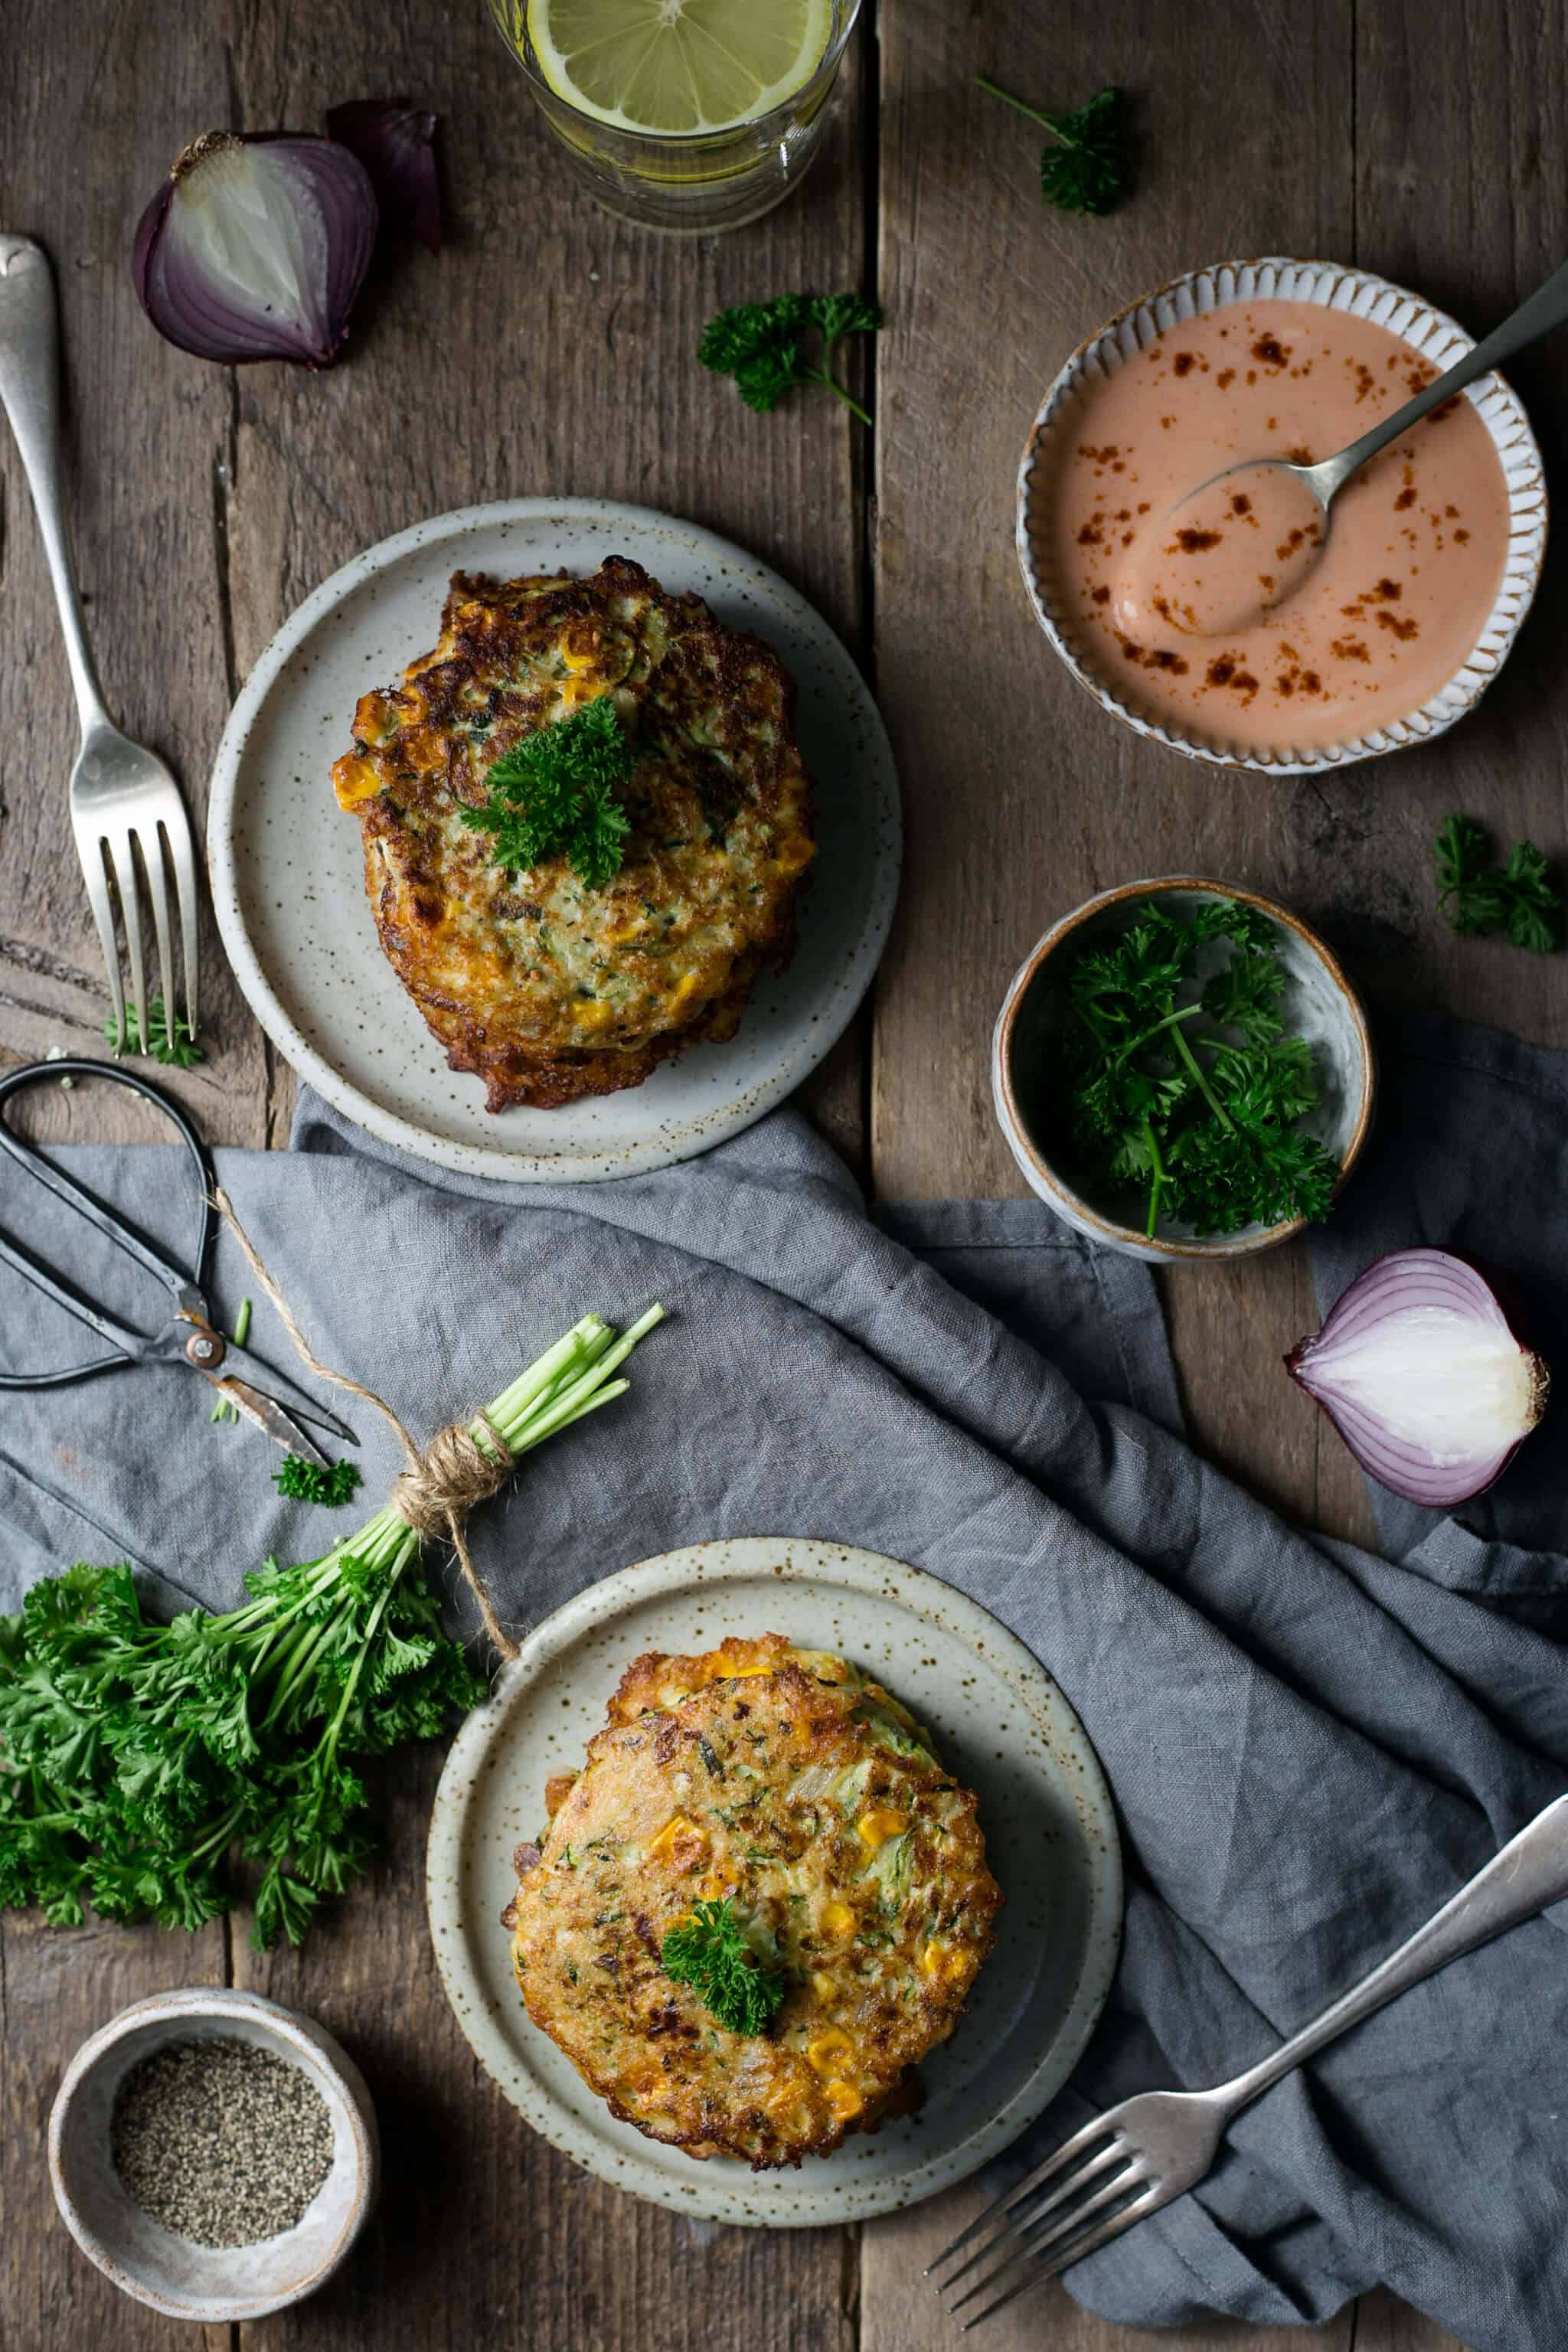 Courgette and corn fritters served with spicy dip | via @annabanana.co